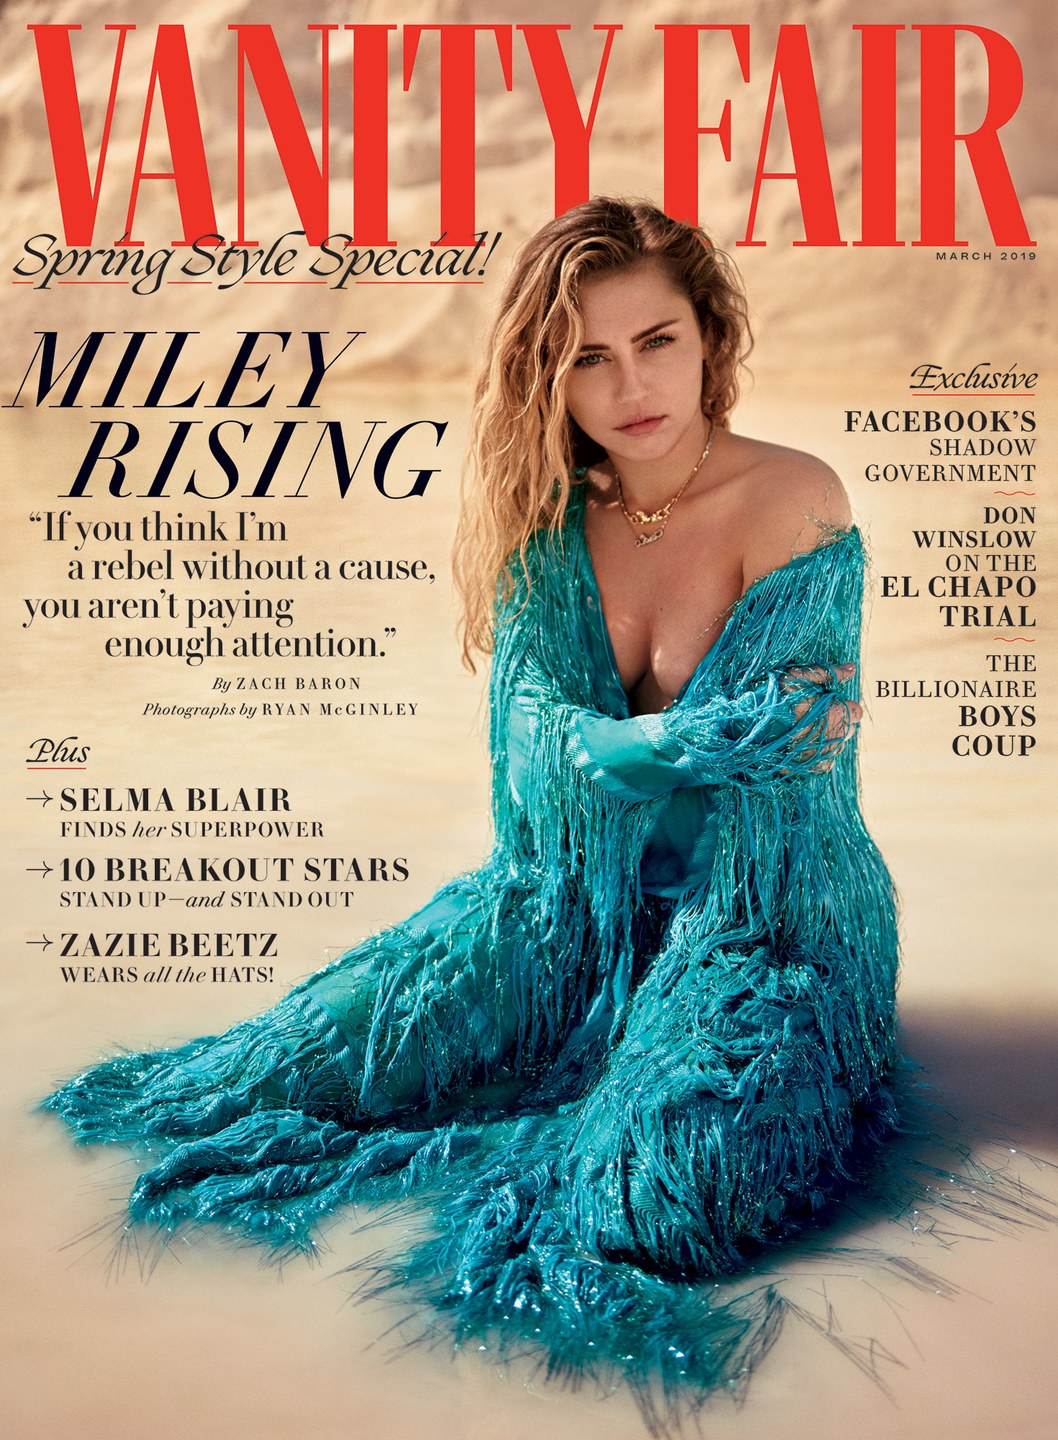 miley-cyrus-march-2019-cover-02.jpg